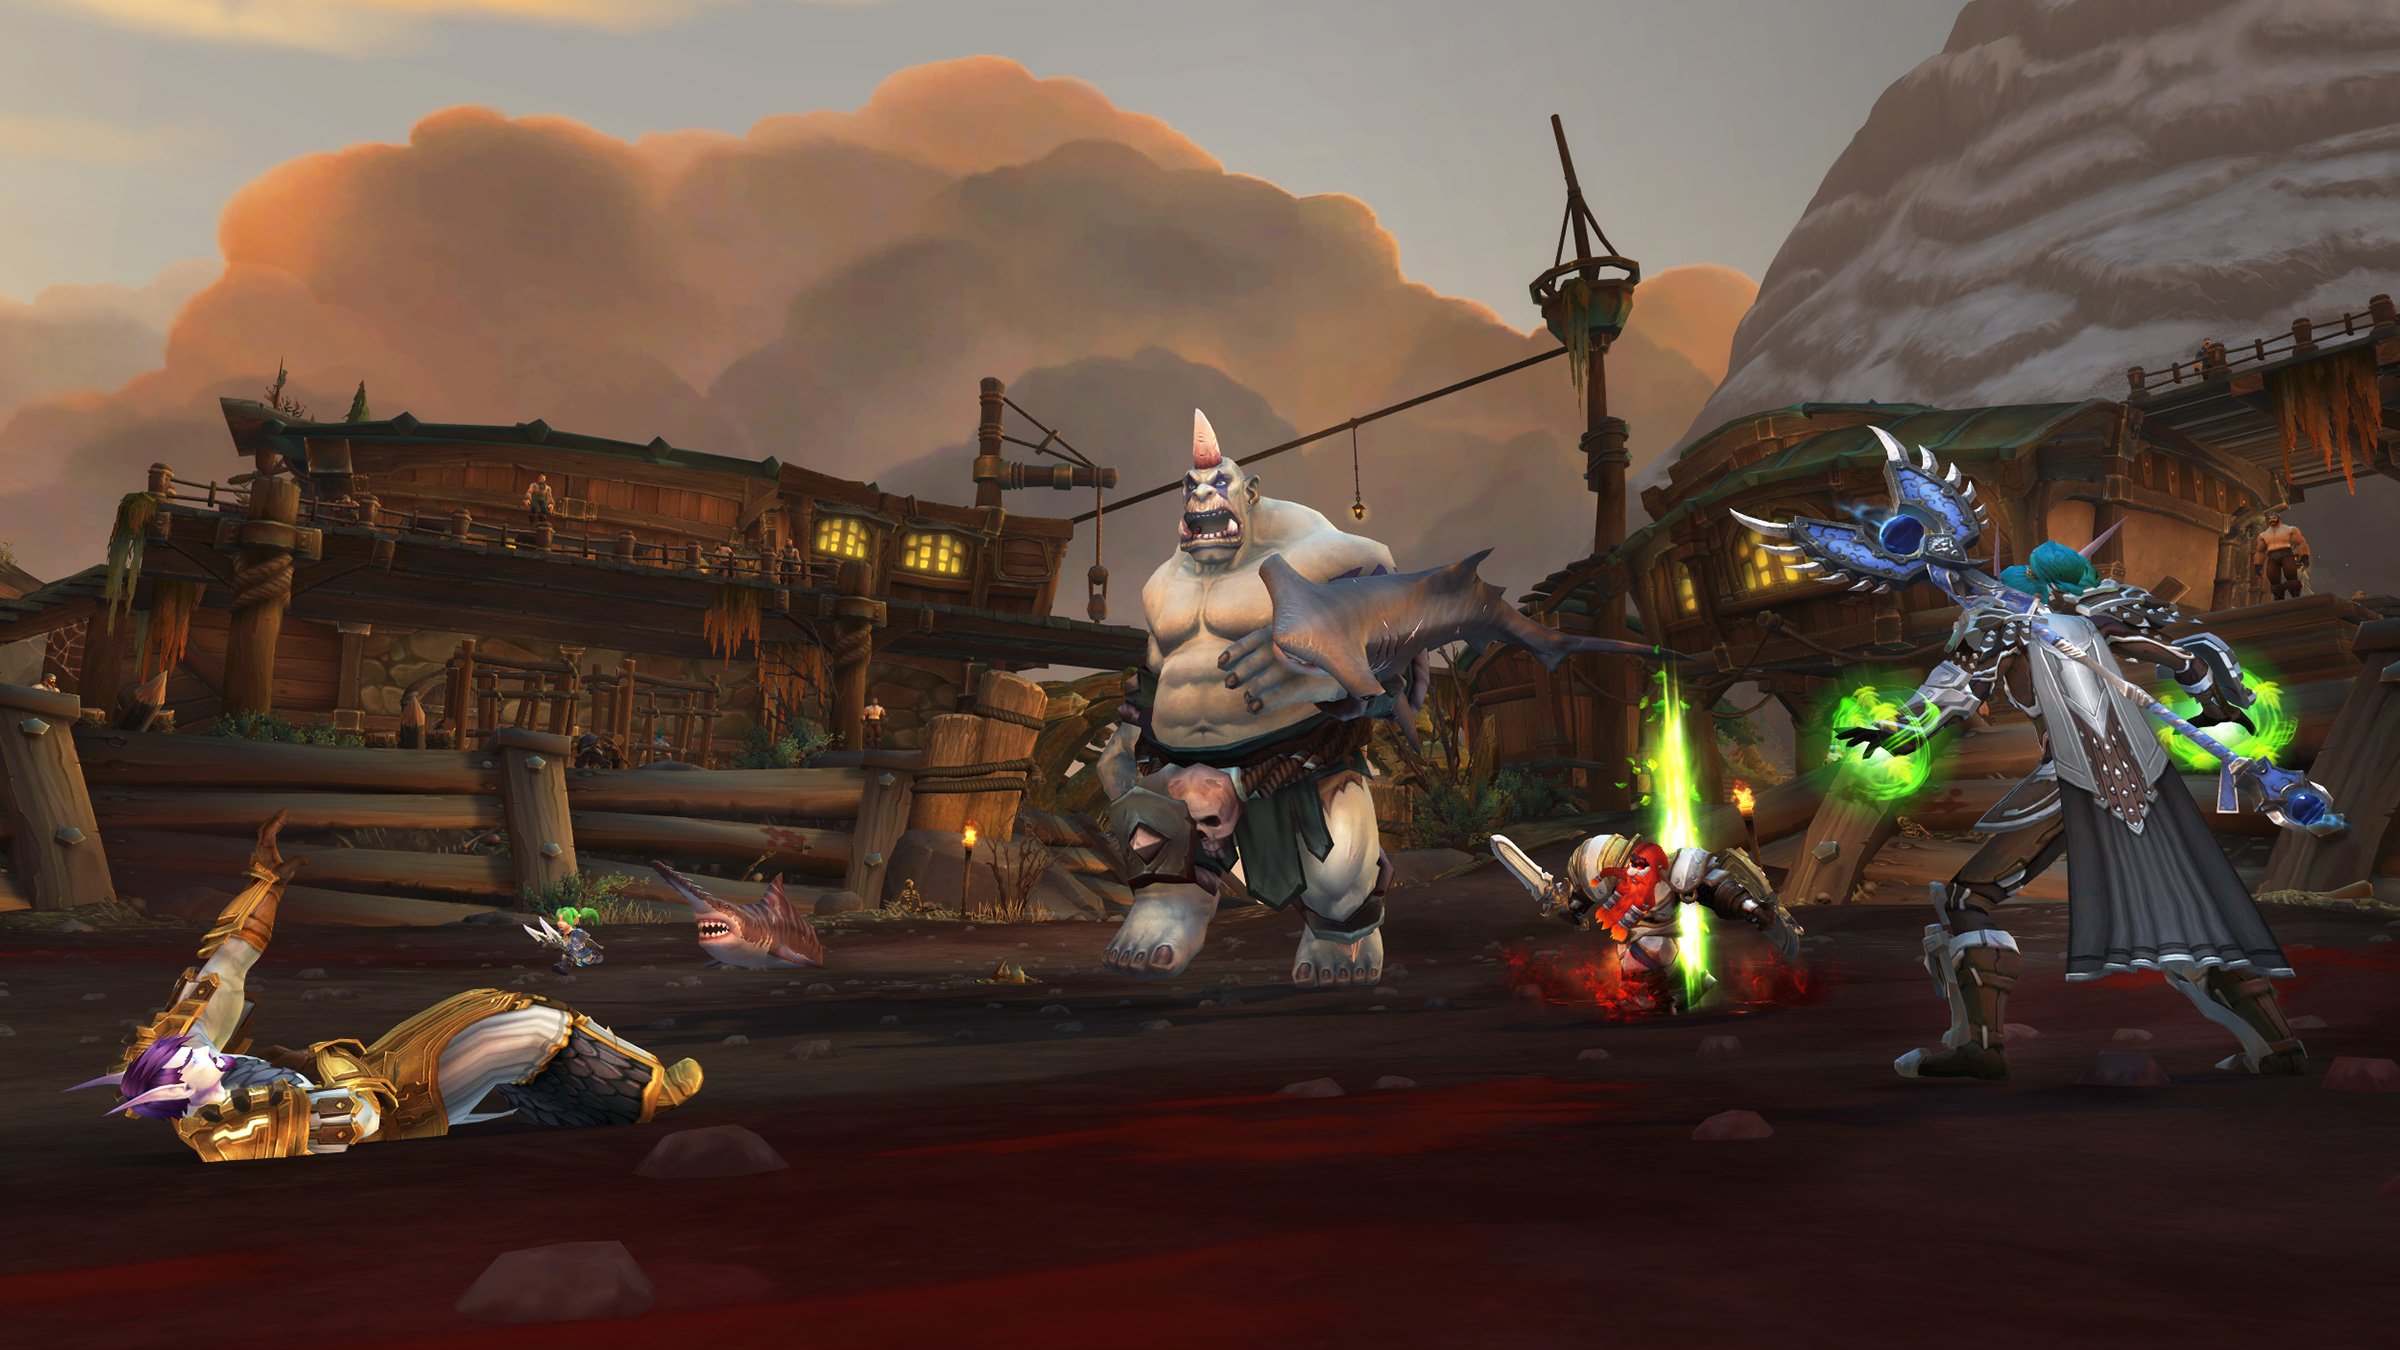 Evento Bônus Semanal: Masmorras de Battle for Azeroth